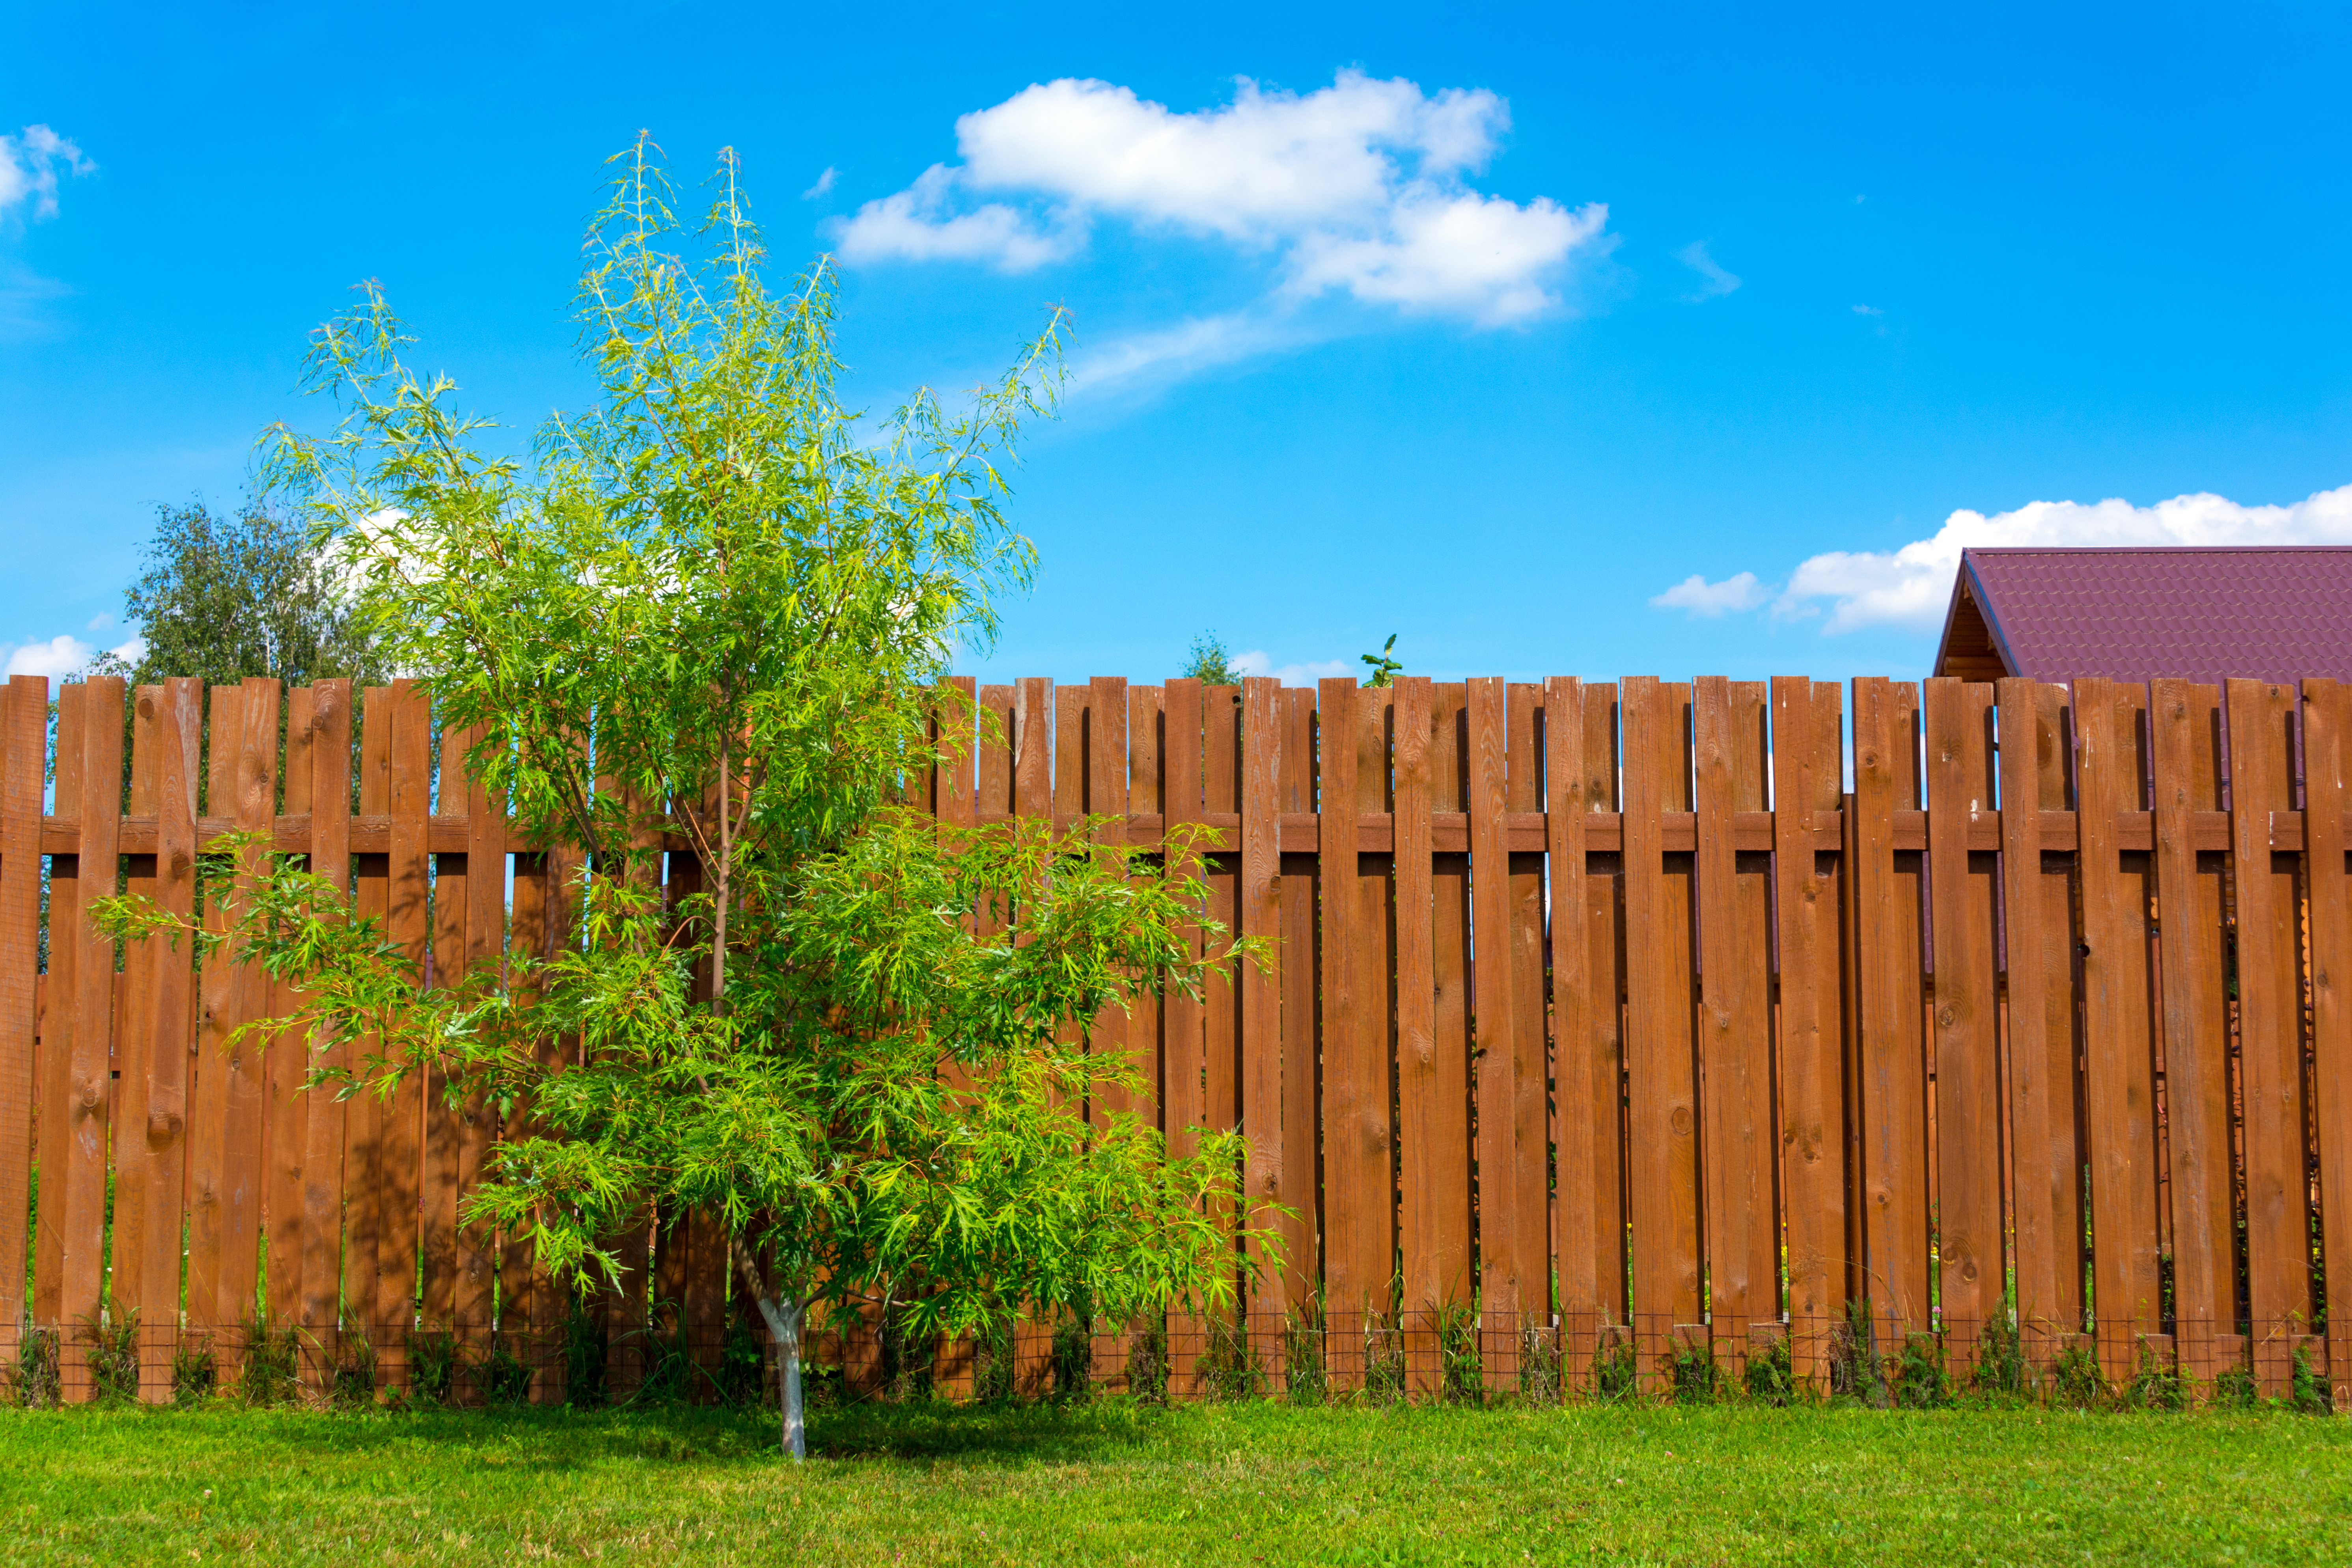 How to Brace a Wooden Fence | Hunker